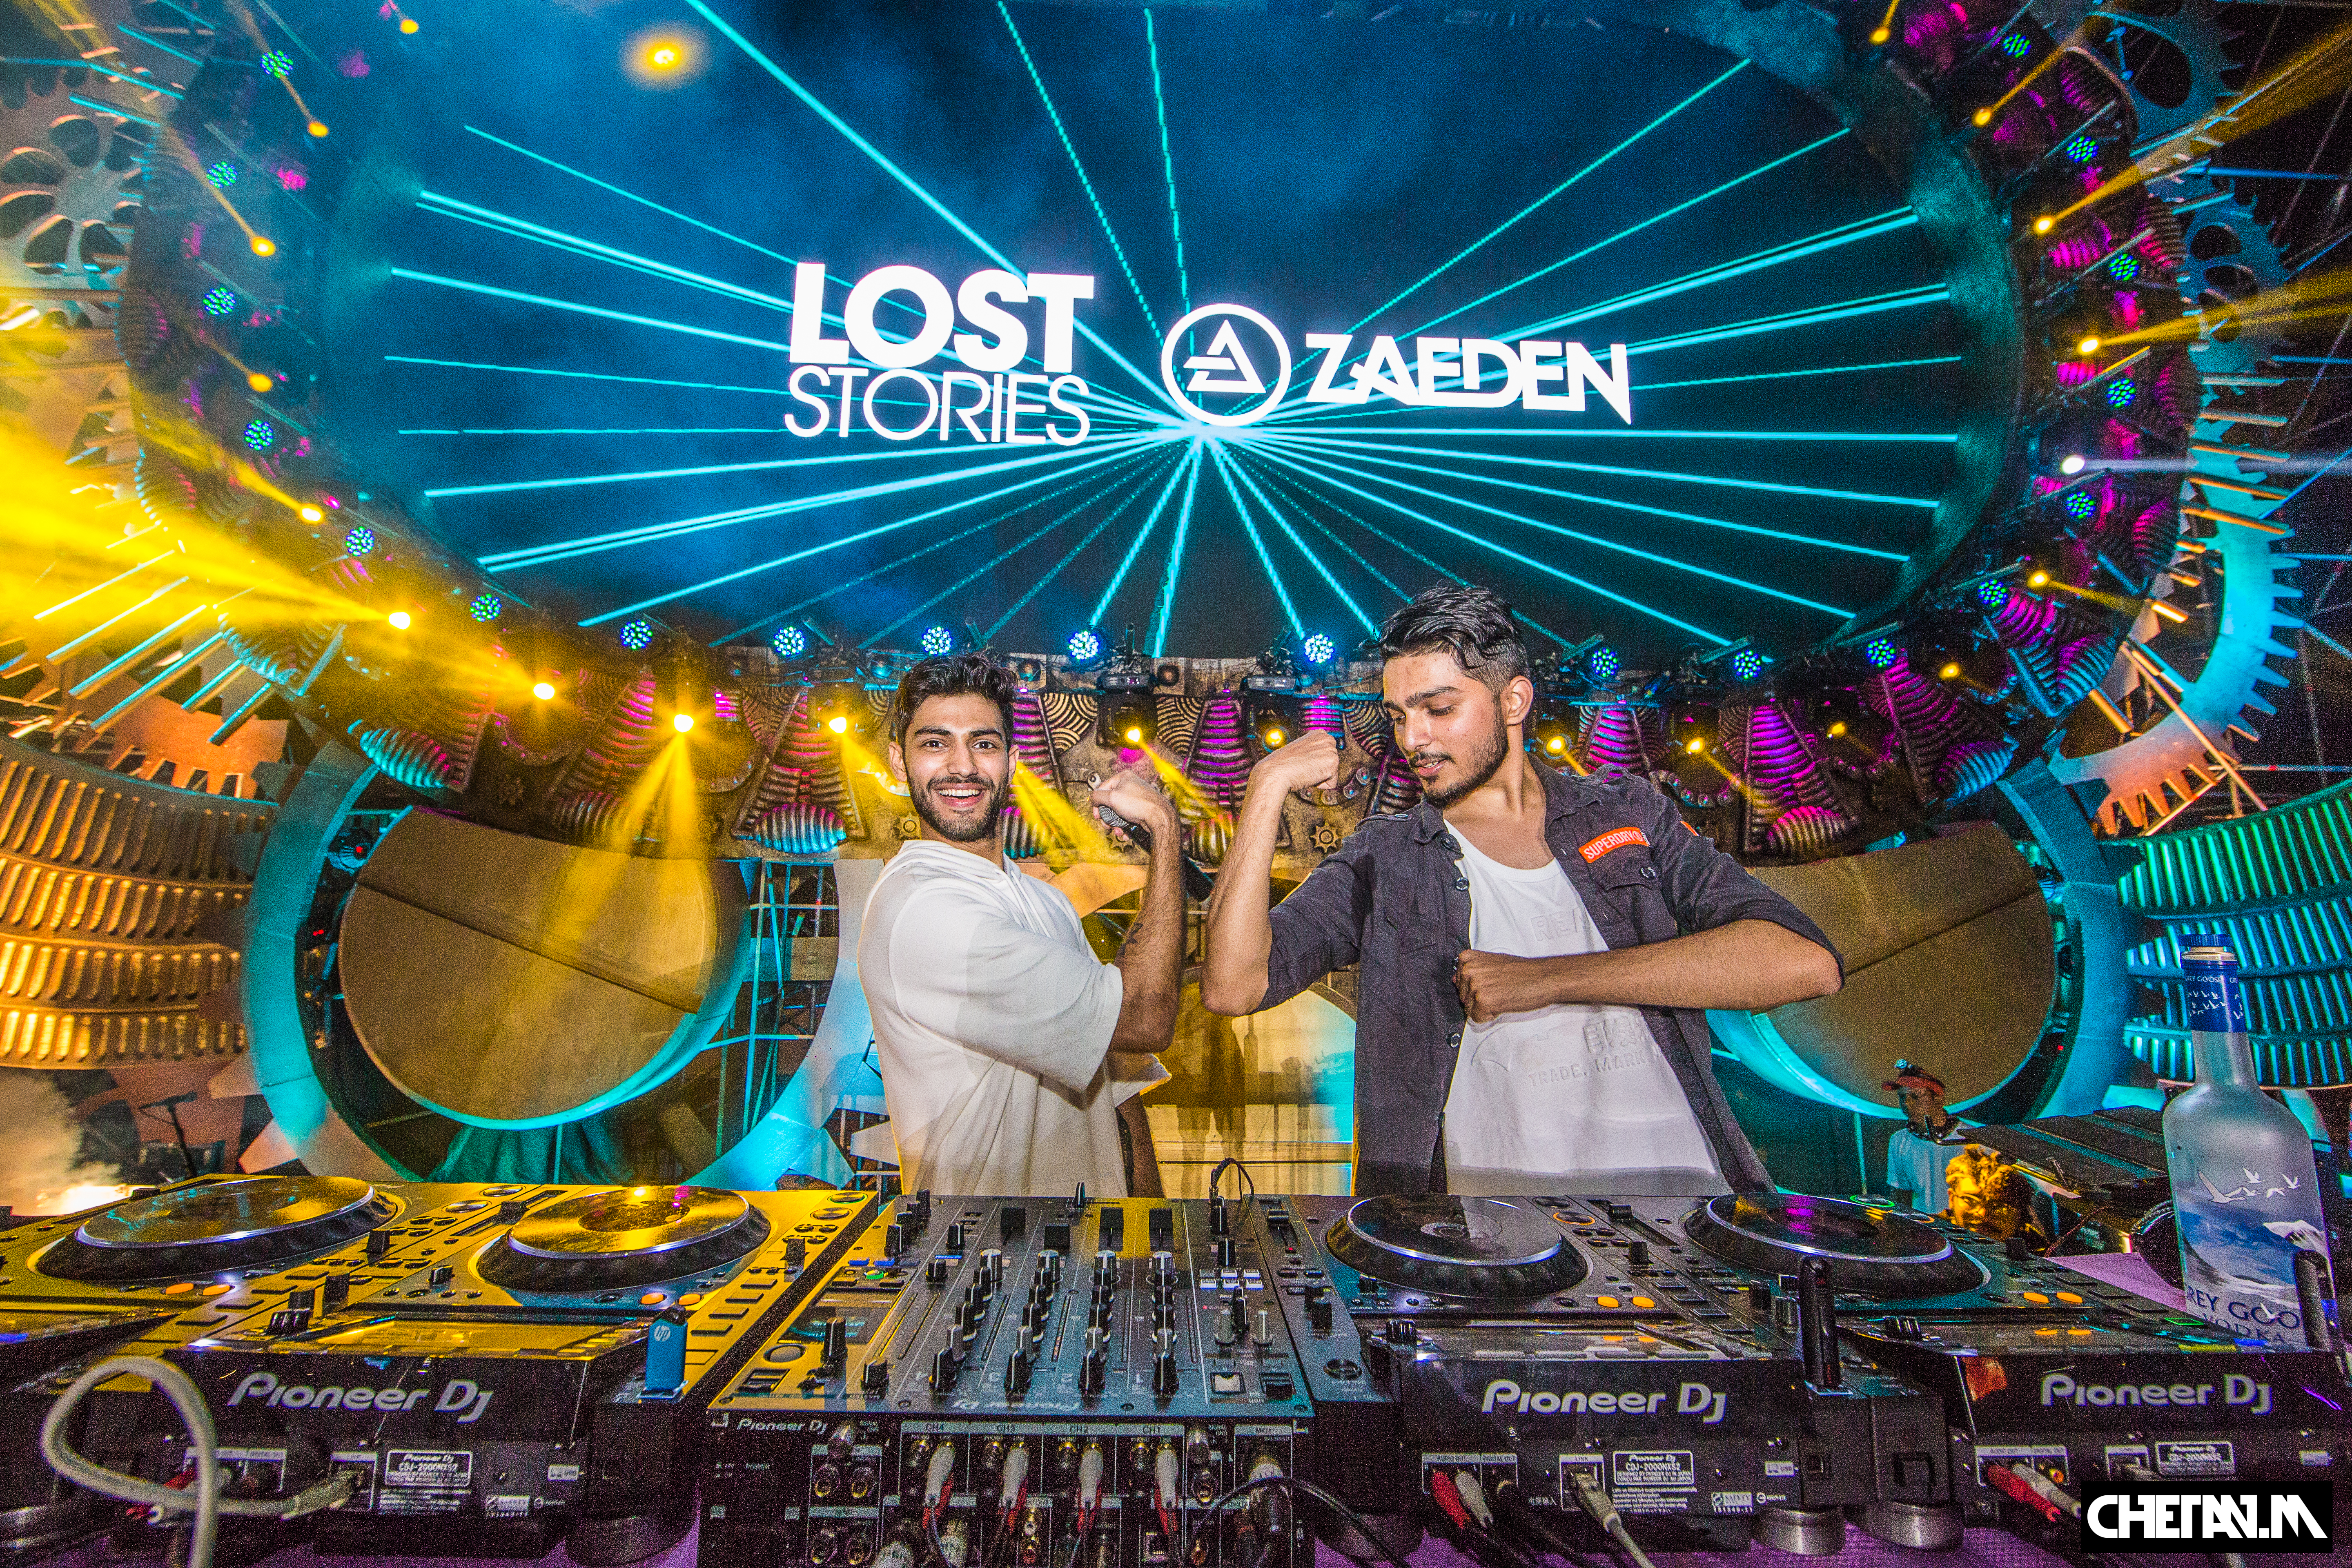 Lost Stories x Zaeden at Timeout72